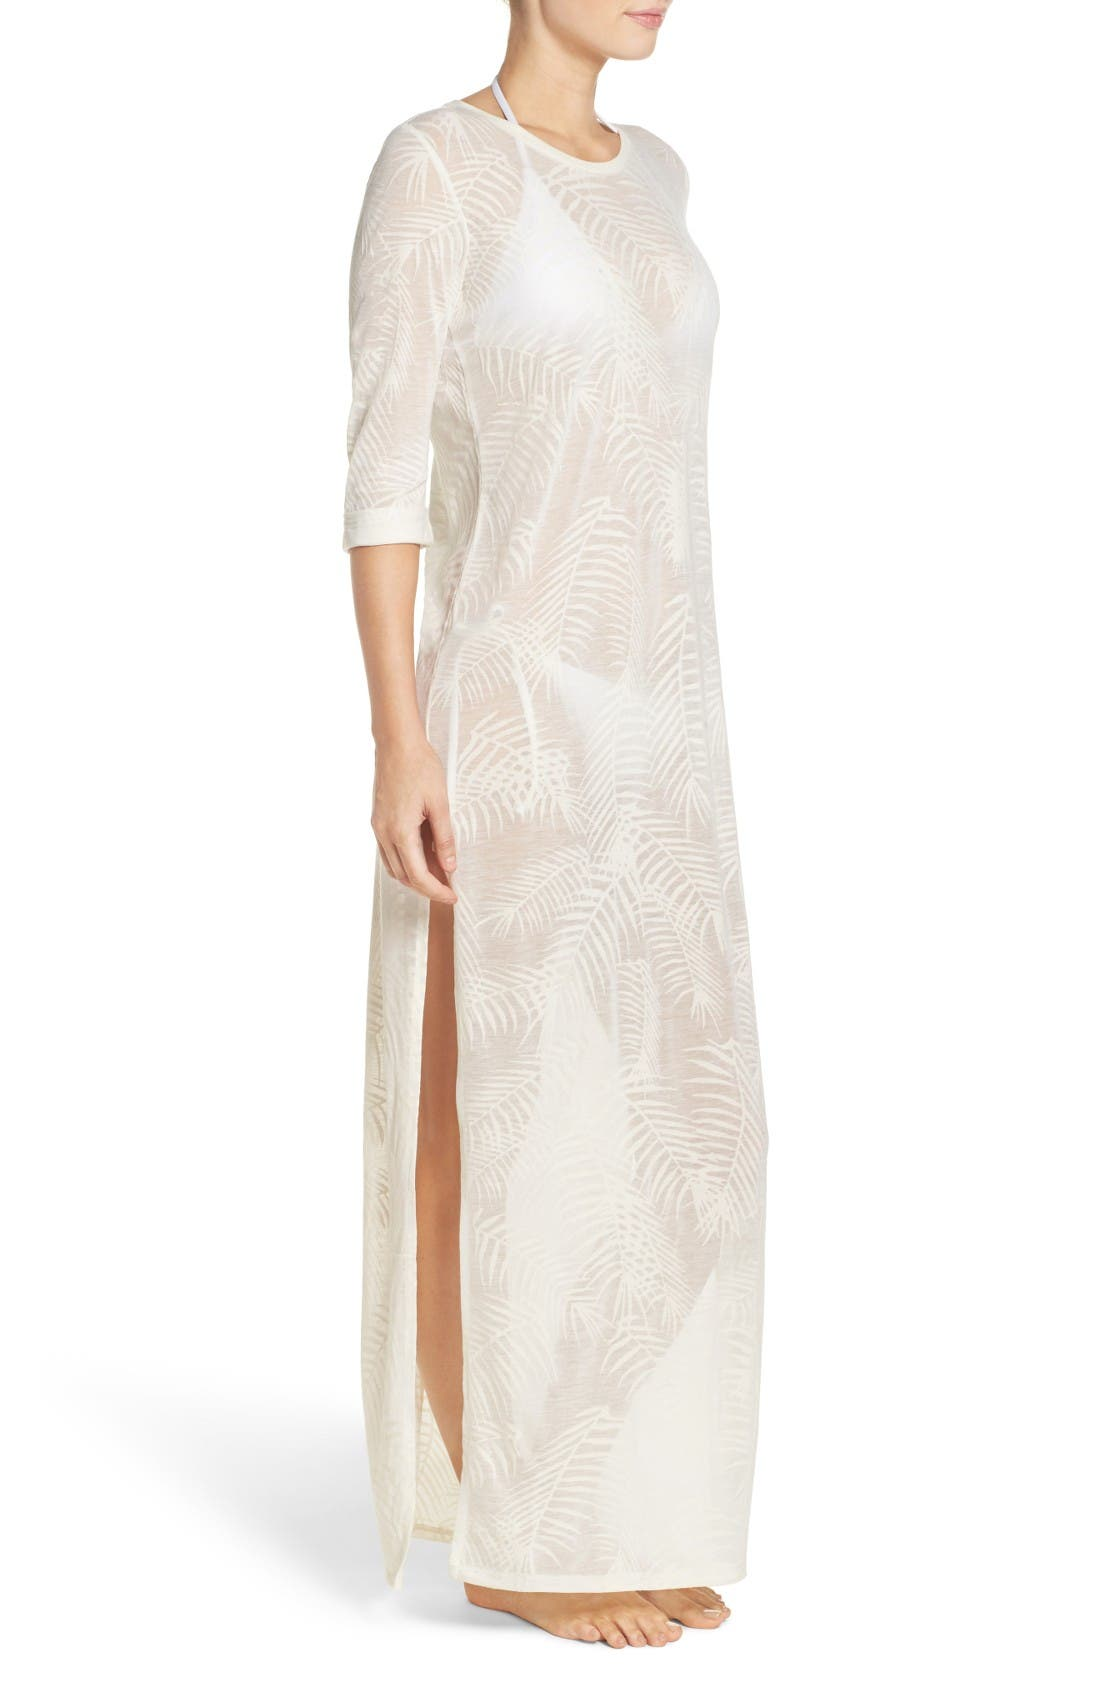 Finley Cover-Up Maxi Dress,                             Alternate thumbnail 3, color,                             White